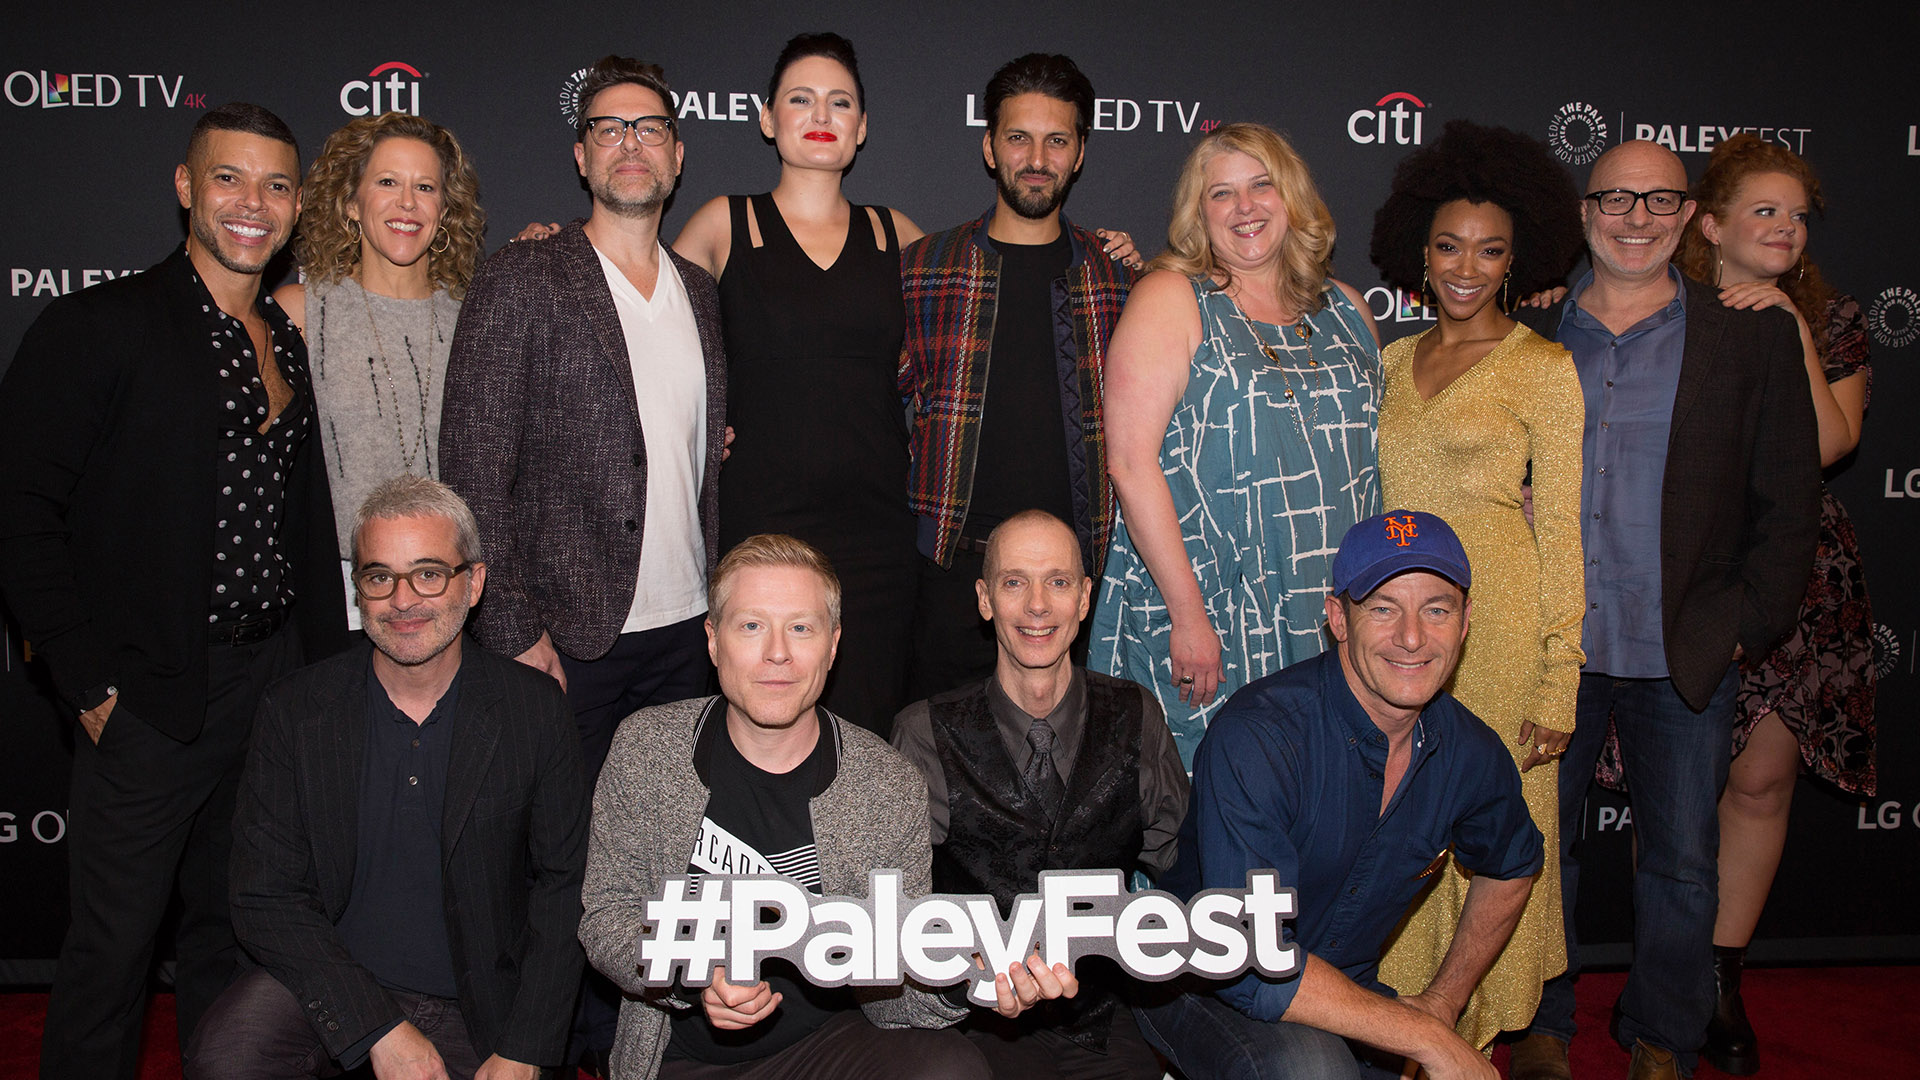 The cast and crew of Star Trek: Discovery